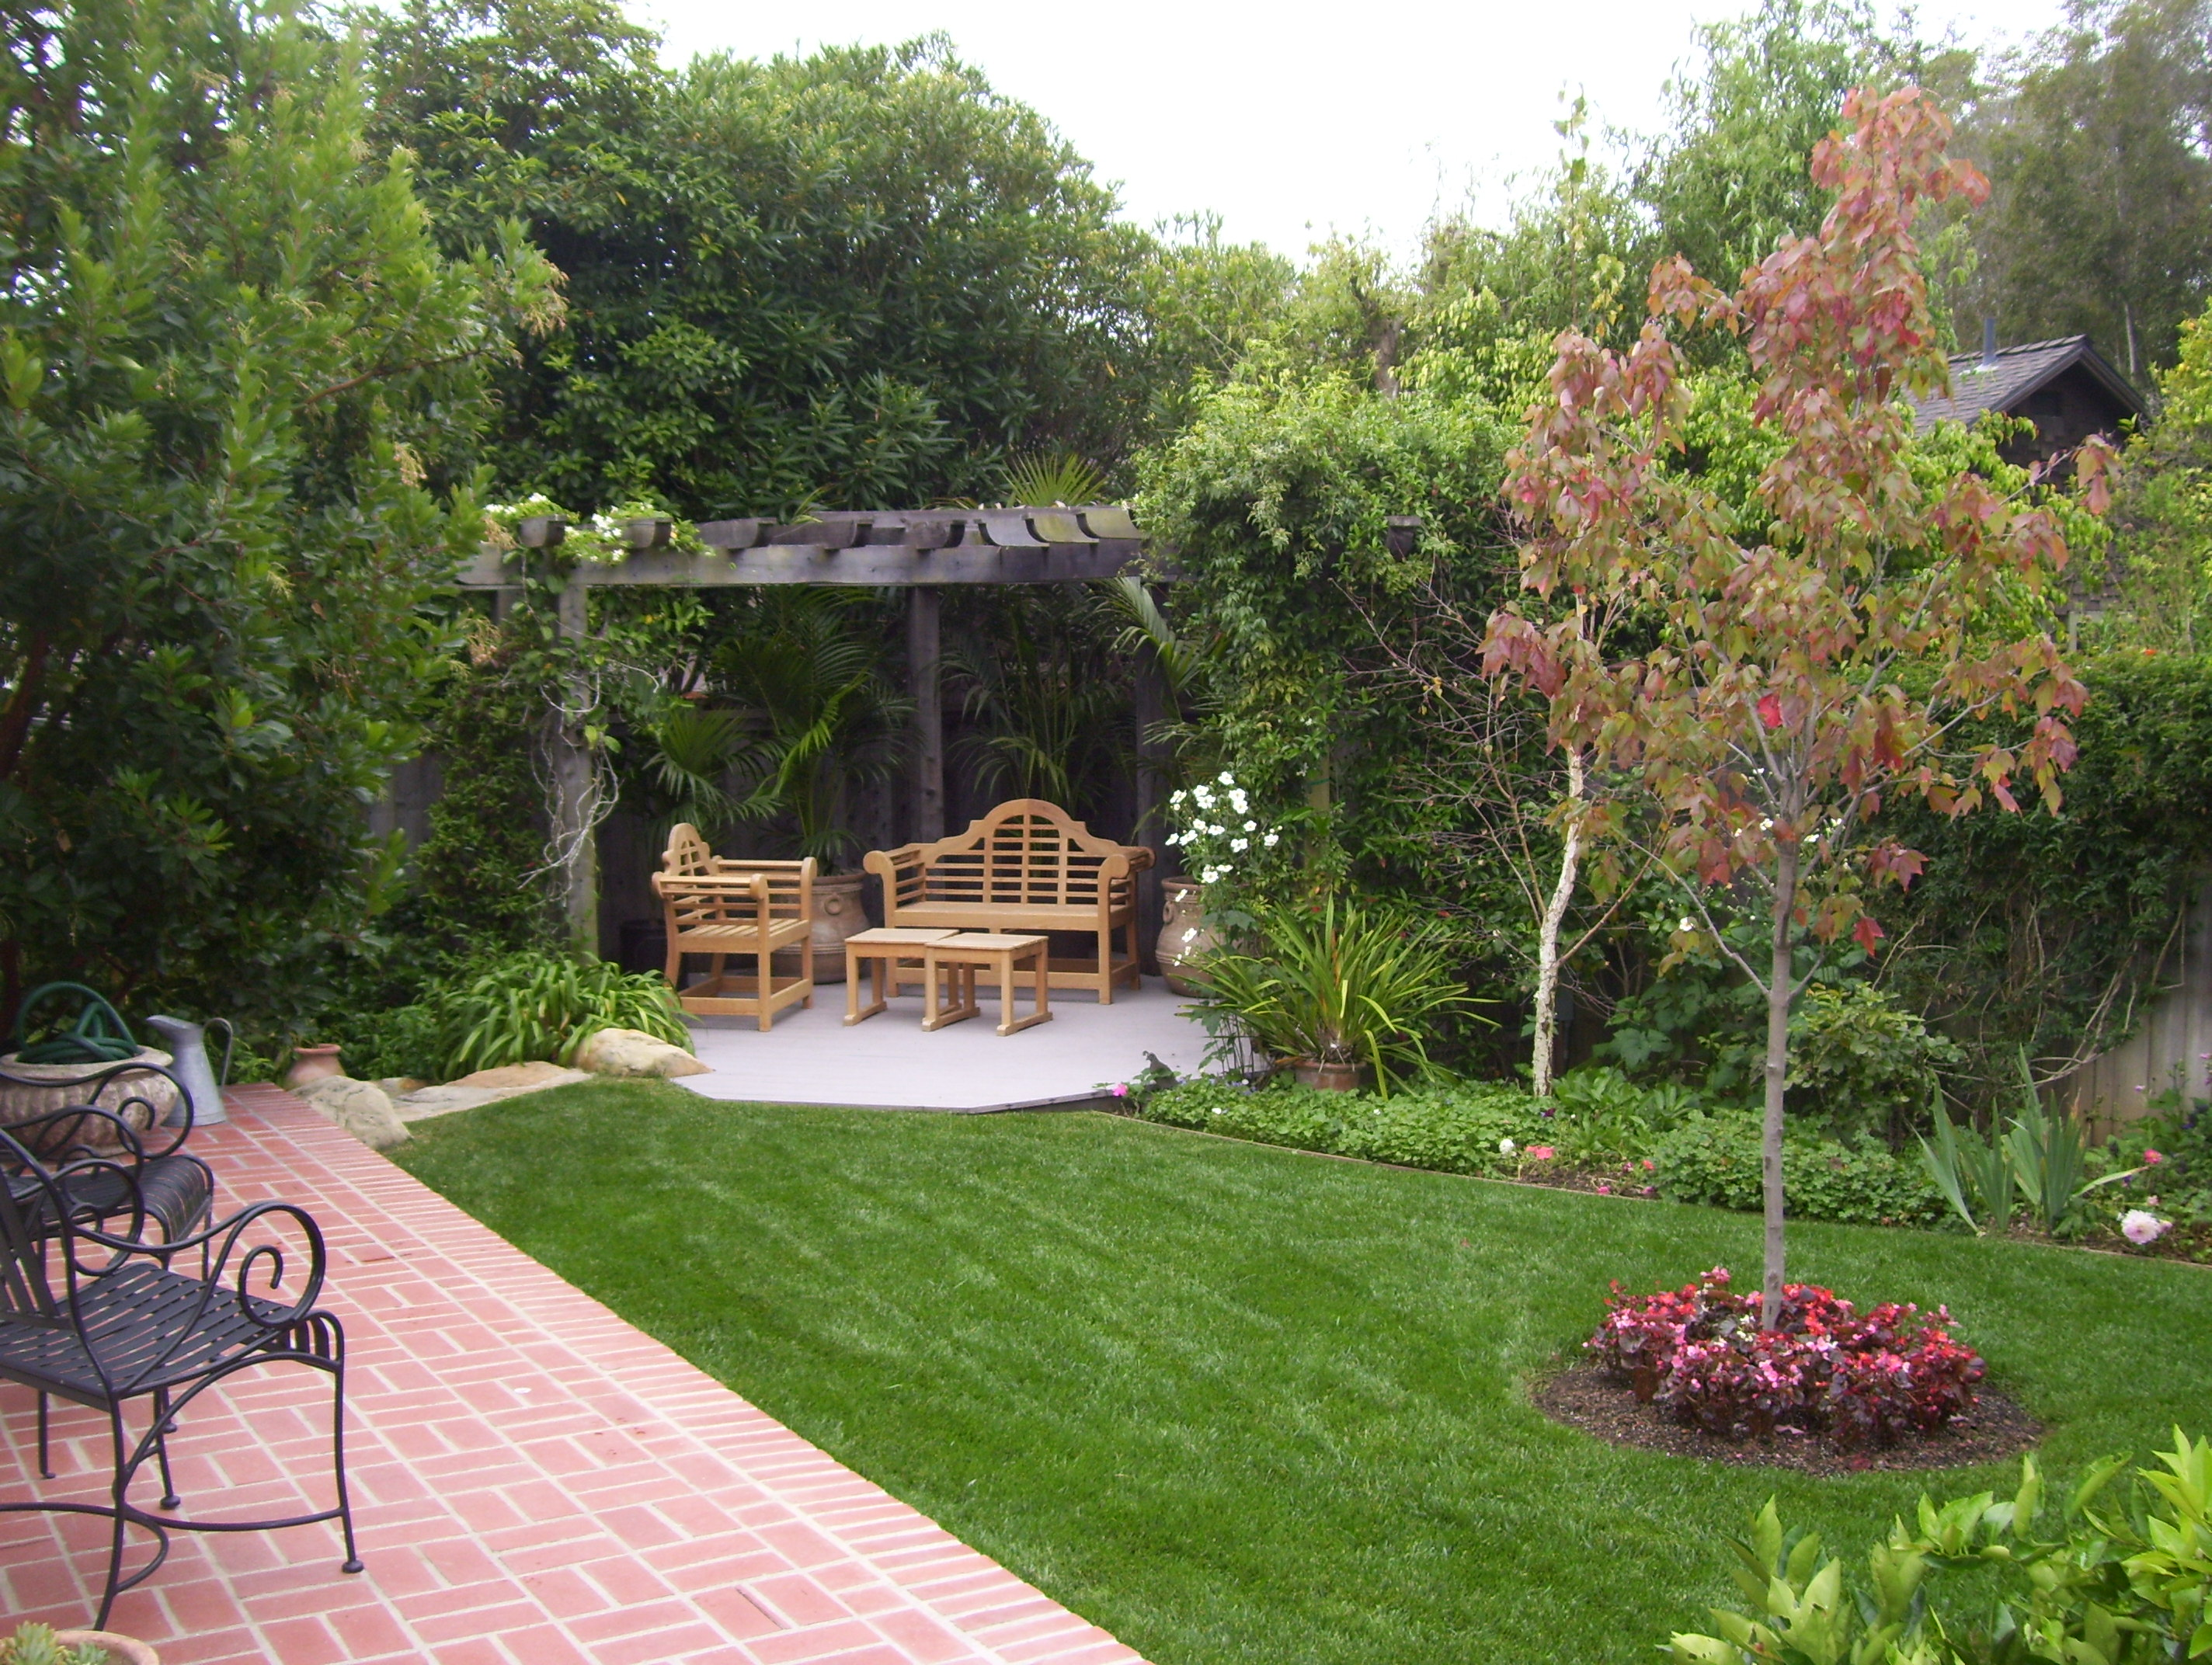 Santa barbara lawn and garden maintenenace landscape for Garden lawn ideas